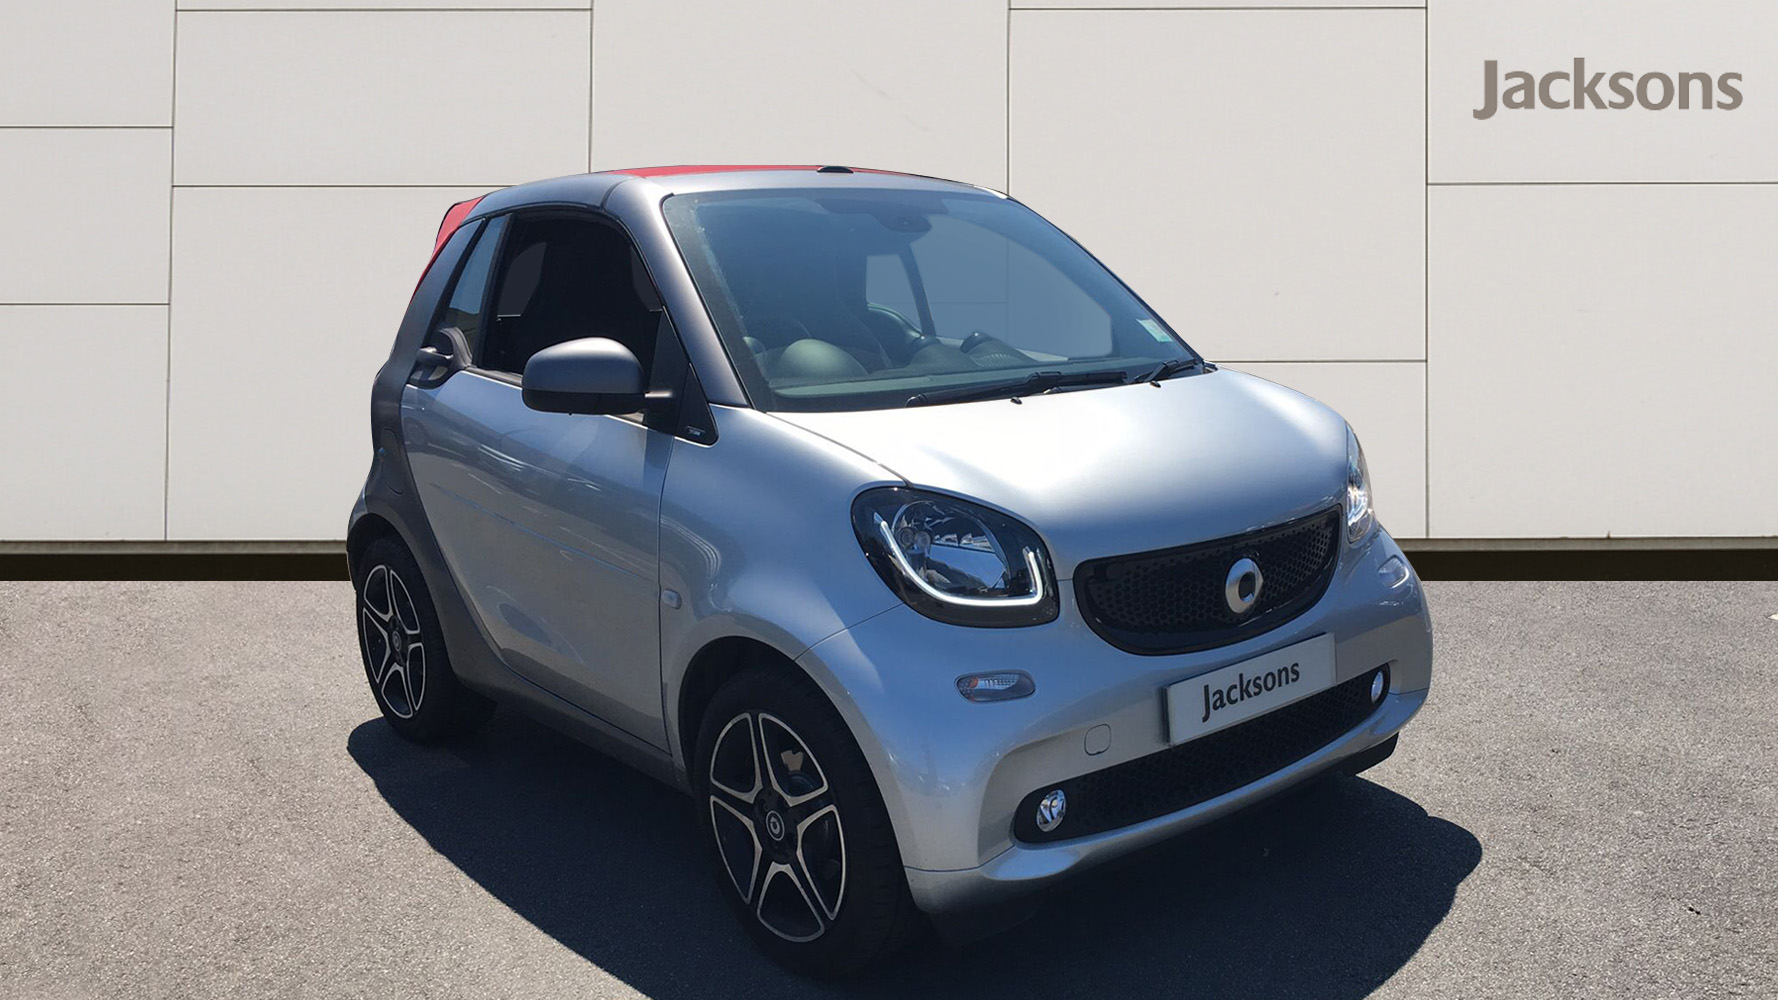 Smart Fortwo 10 995 Key Facts